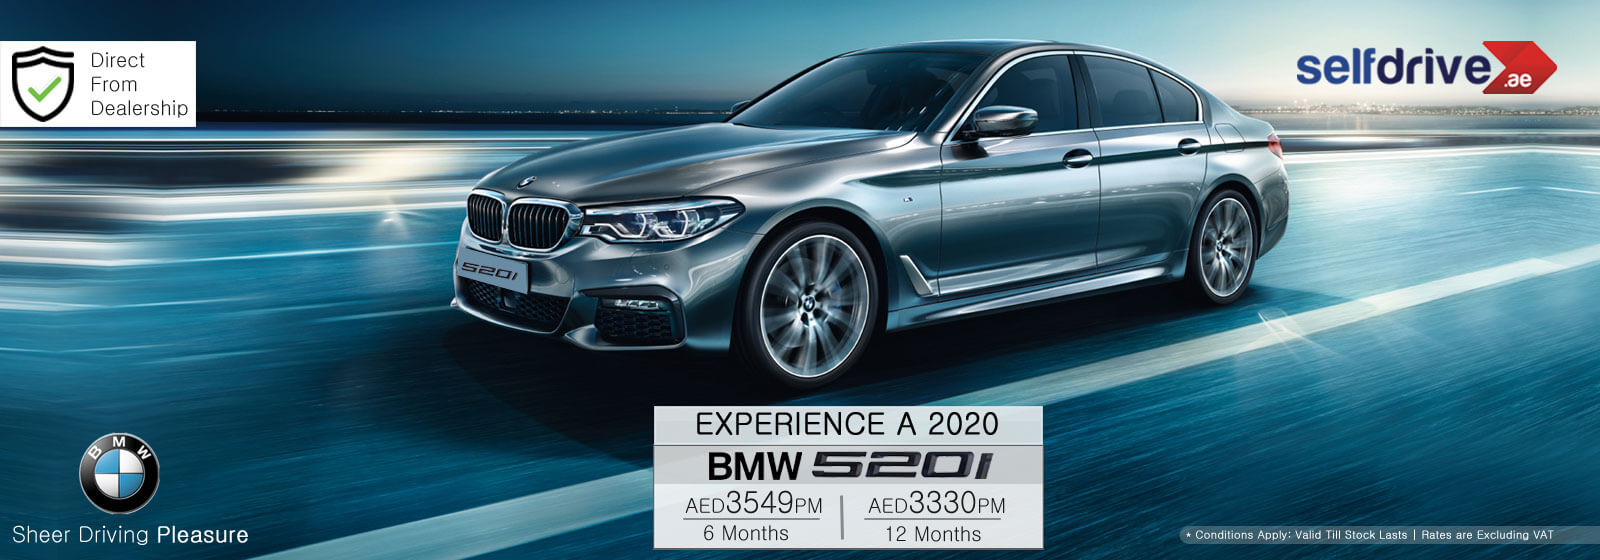 Rent a 2020 BMW520i Dubai